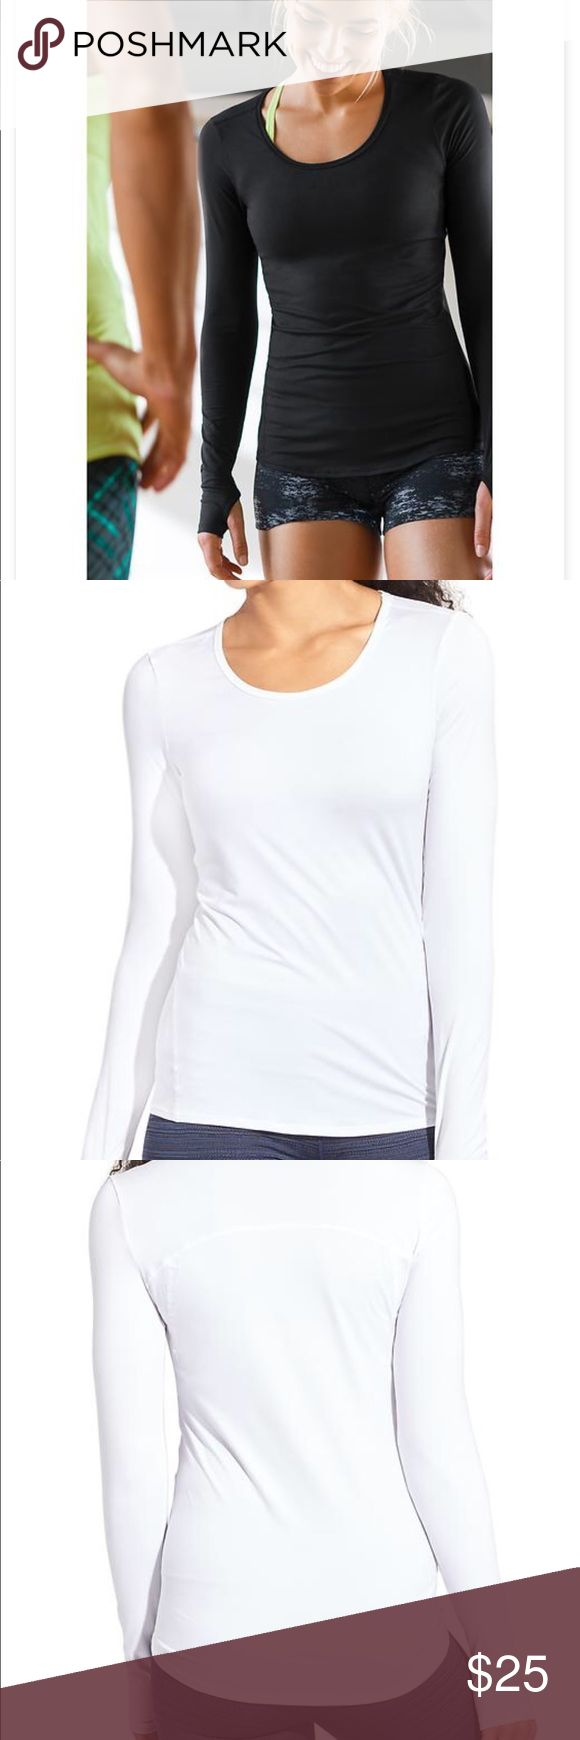 🌸ATHLETA CHI LS TOP🌸 In GOOD CONDITION NO STAINS NO HOLES!, ultra-lightweight top with Unstinkable technology so you can sweat it out in back-to-back workouts. INSPIRED FOR: gym/training, yoga, studio workouts FAIR TRADE: Made in a Fair Trade Certified™ Factory. Flattering forward-placed seam lines High-low hem for extra coverage Curved thumbholes keep sleeves in place Athleta Tops Tees - Long Sleeve